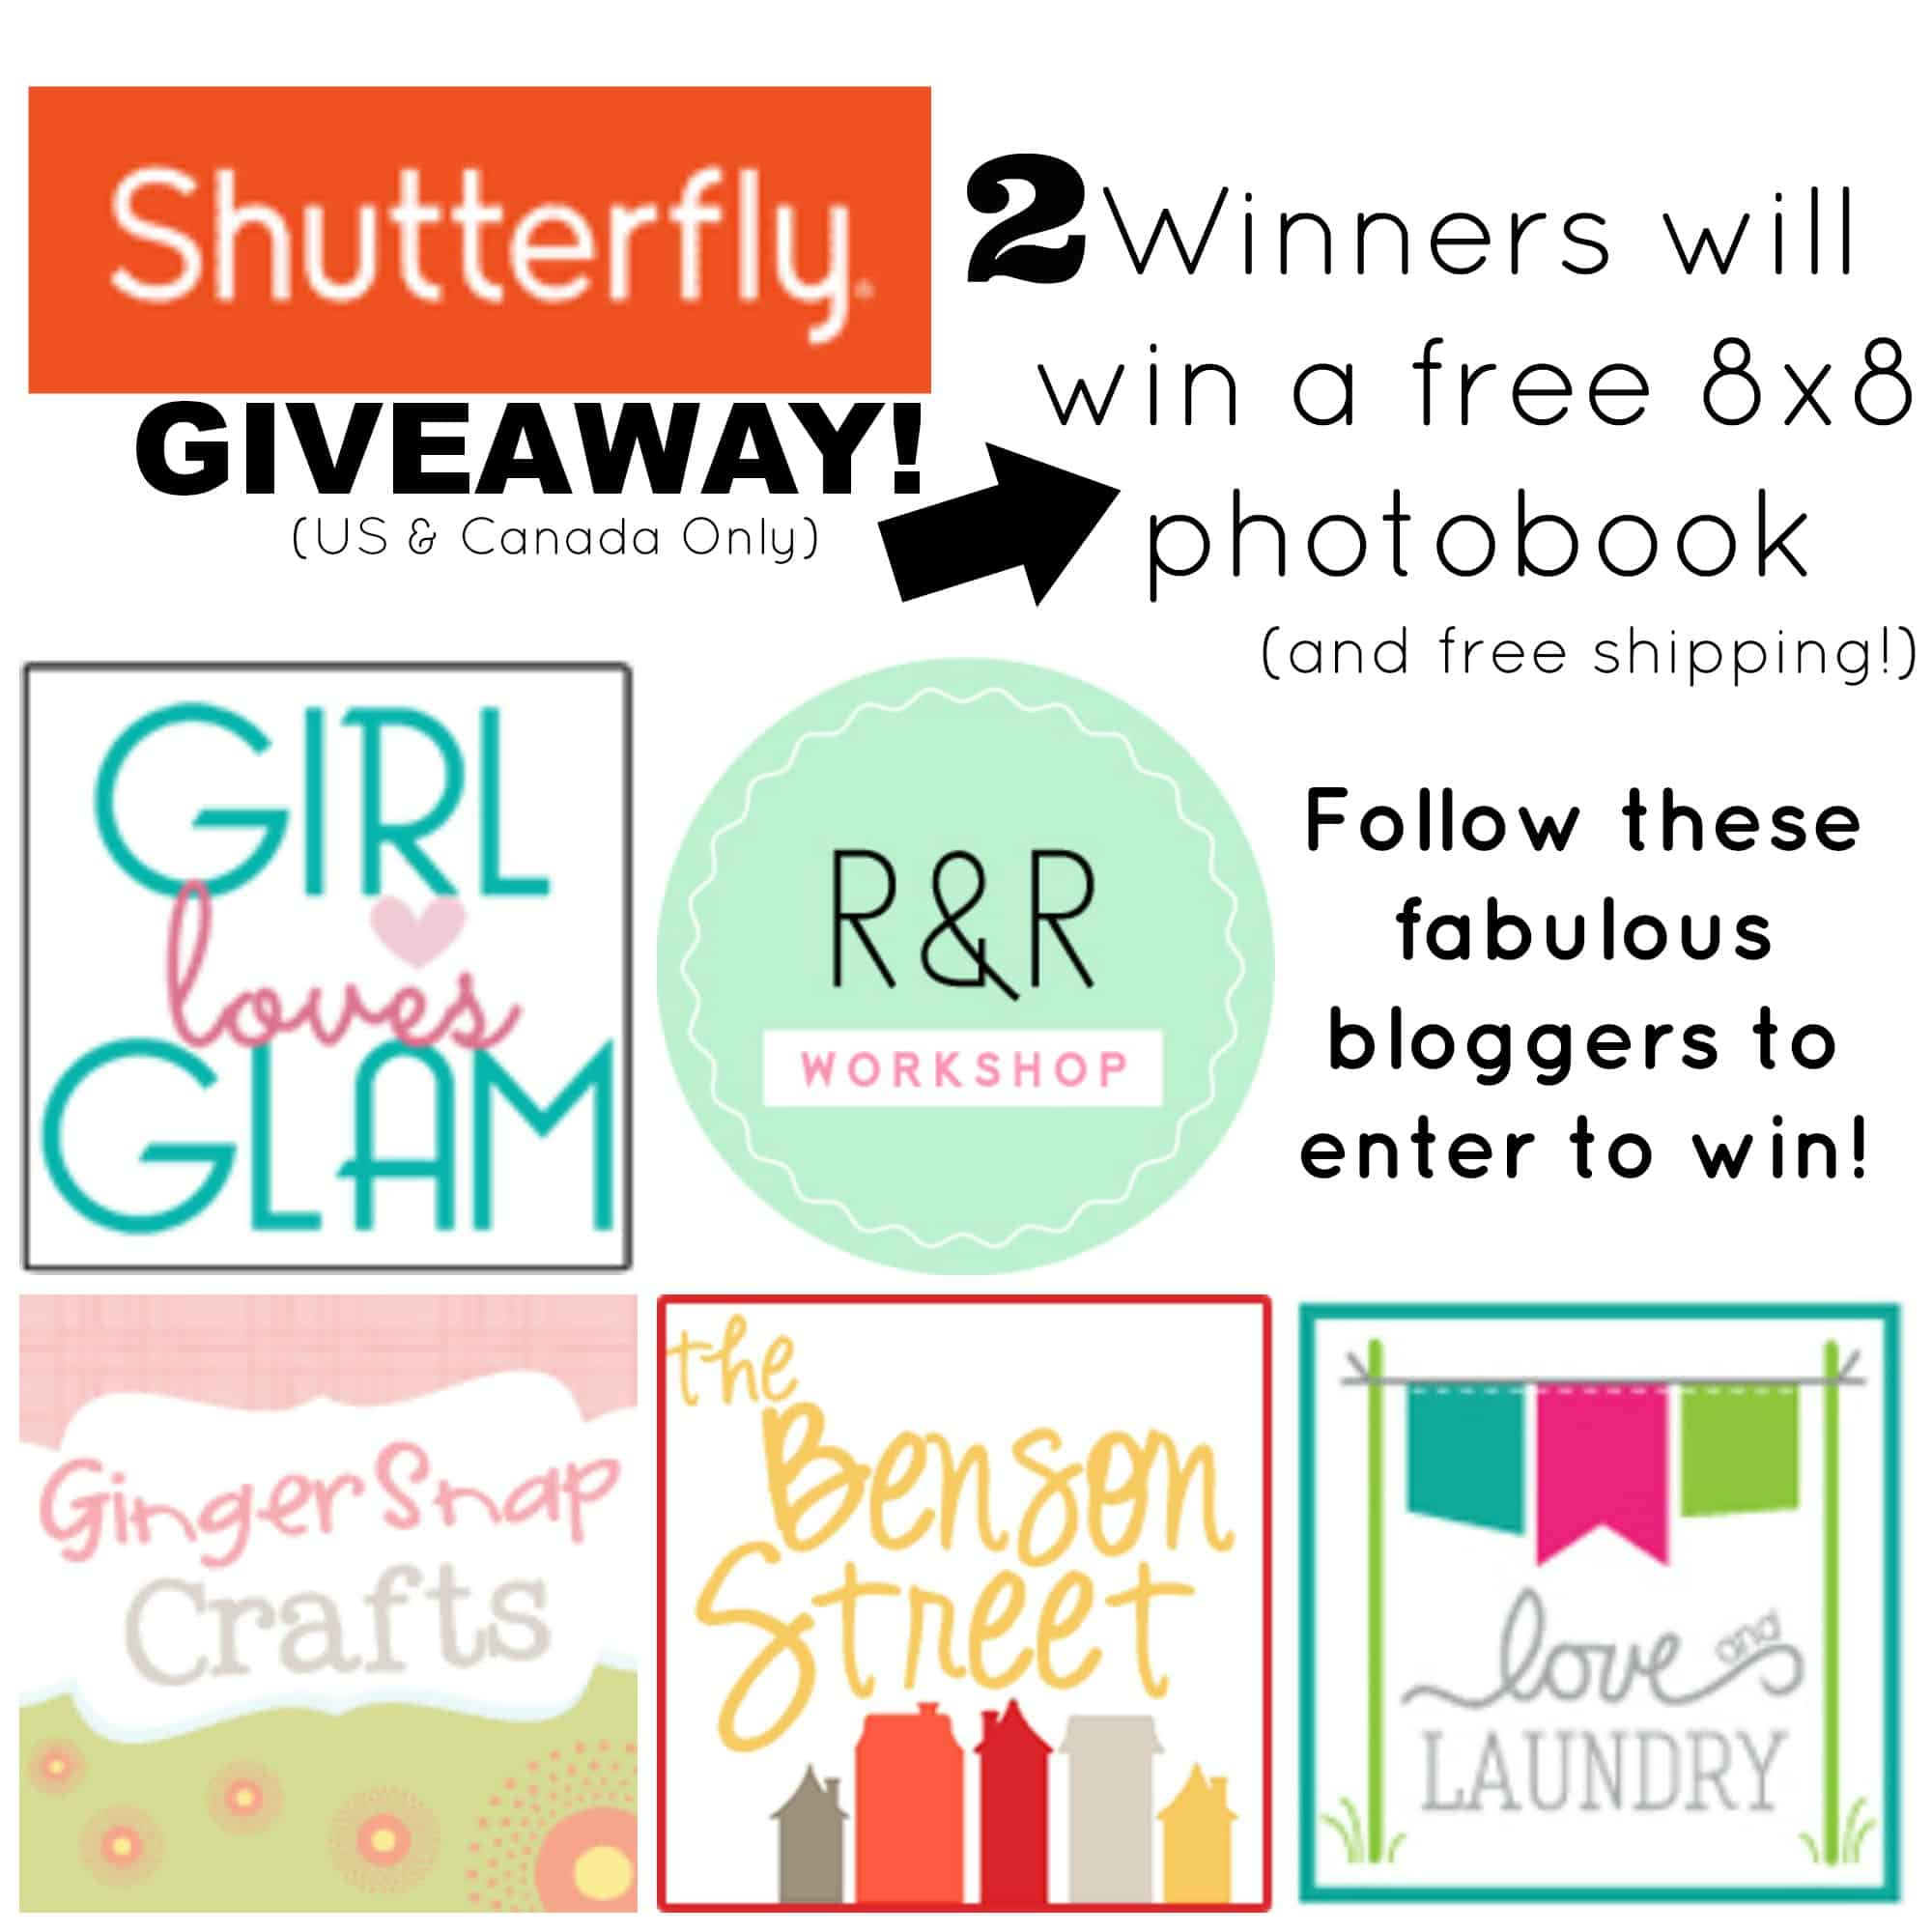 Shutterfly Giveaway! - Girl Loves Glam